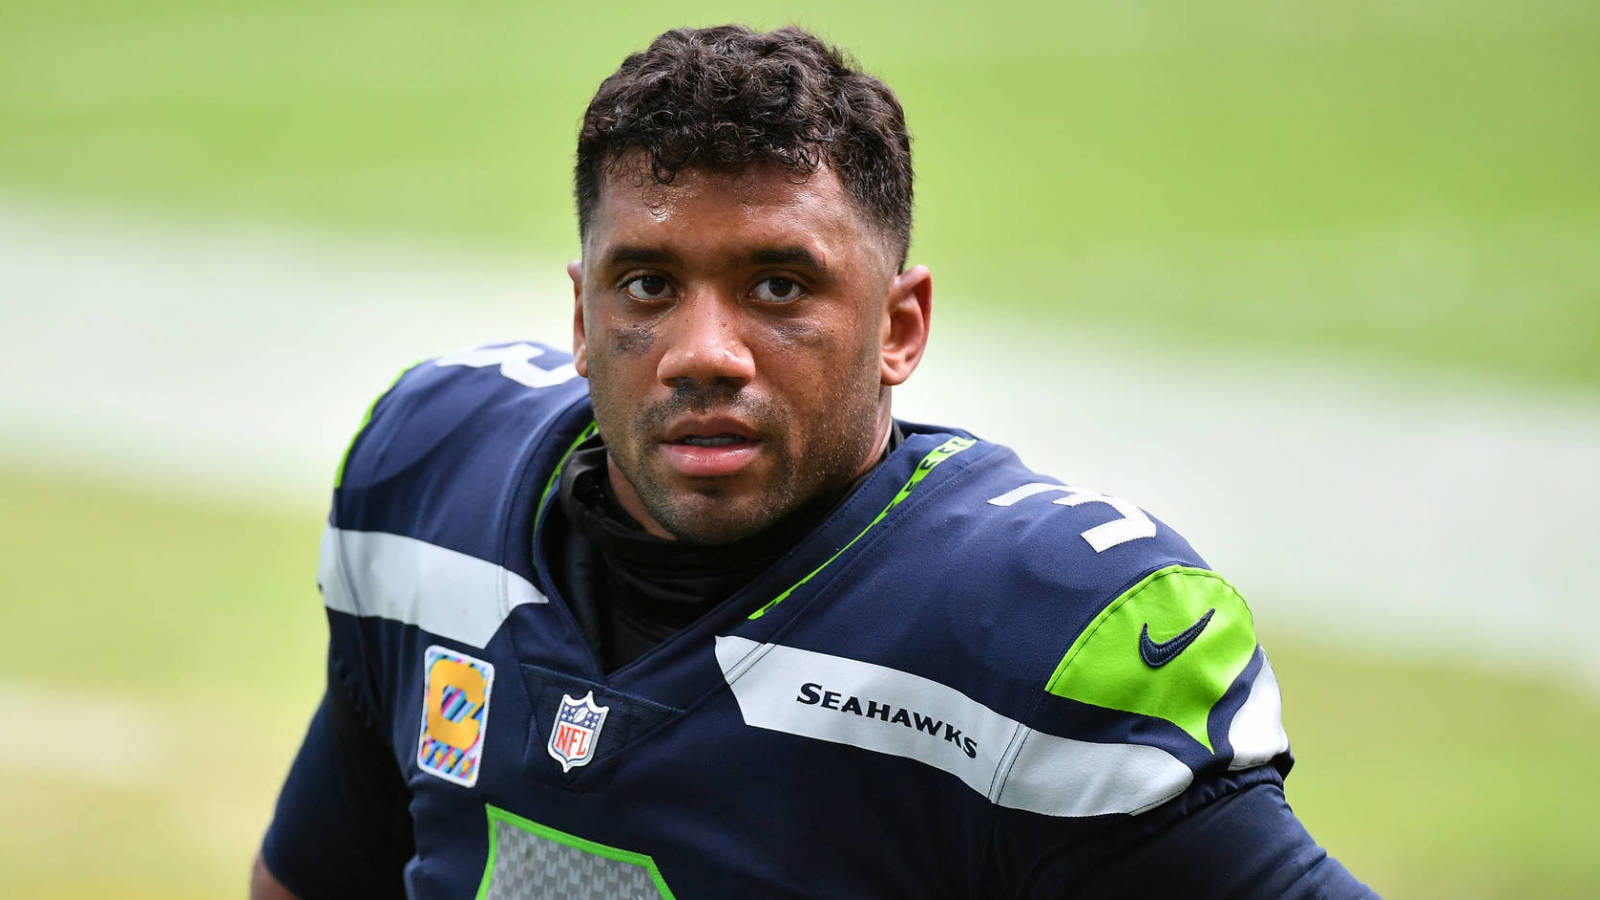 Seahawks' Russell Wilson: Seattle would be 'great place' for Antonio Brown